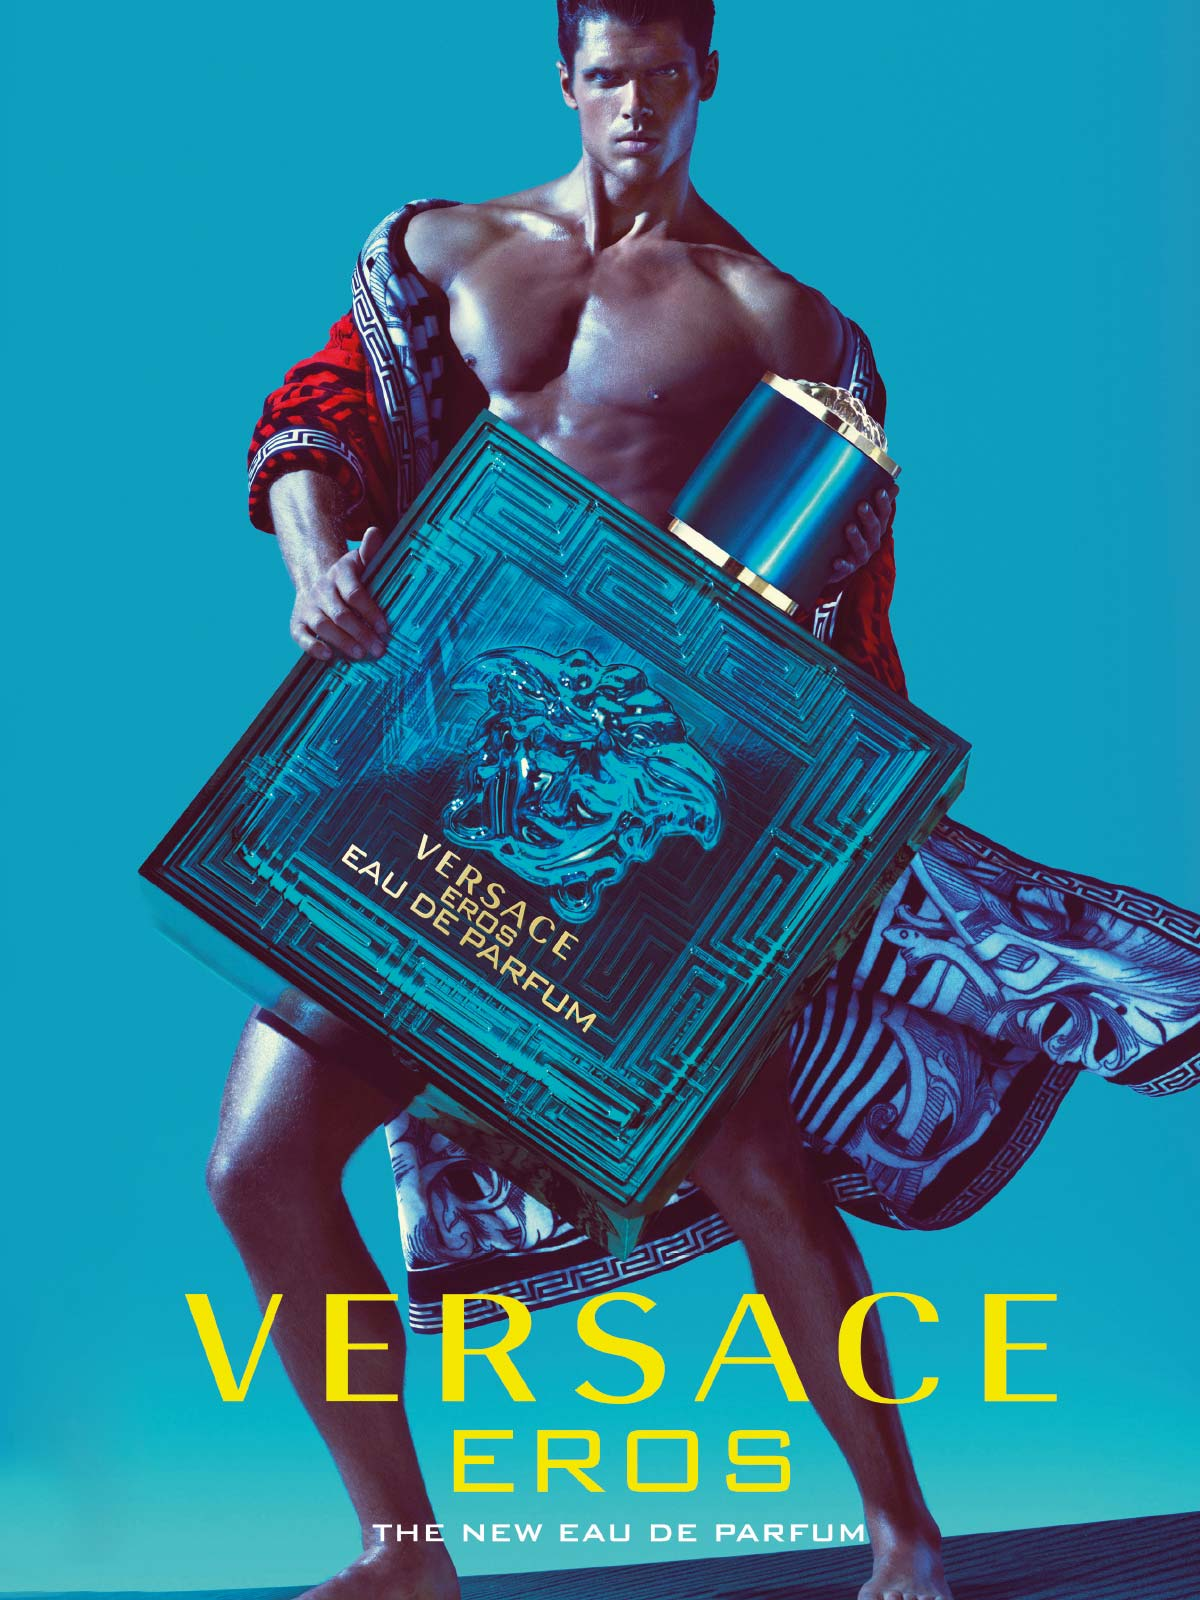 Ein Visual des Versace Eros Parfum Visual